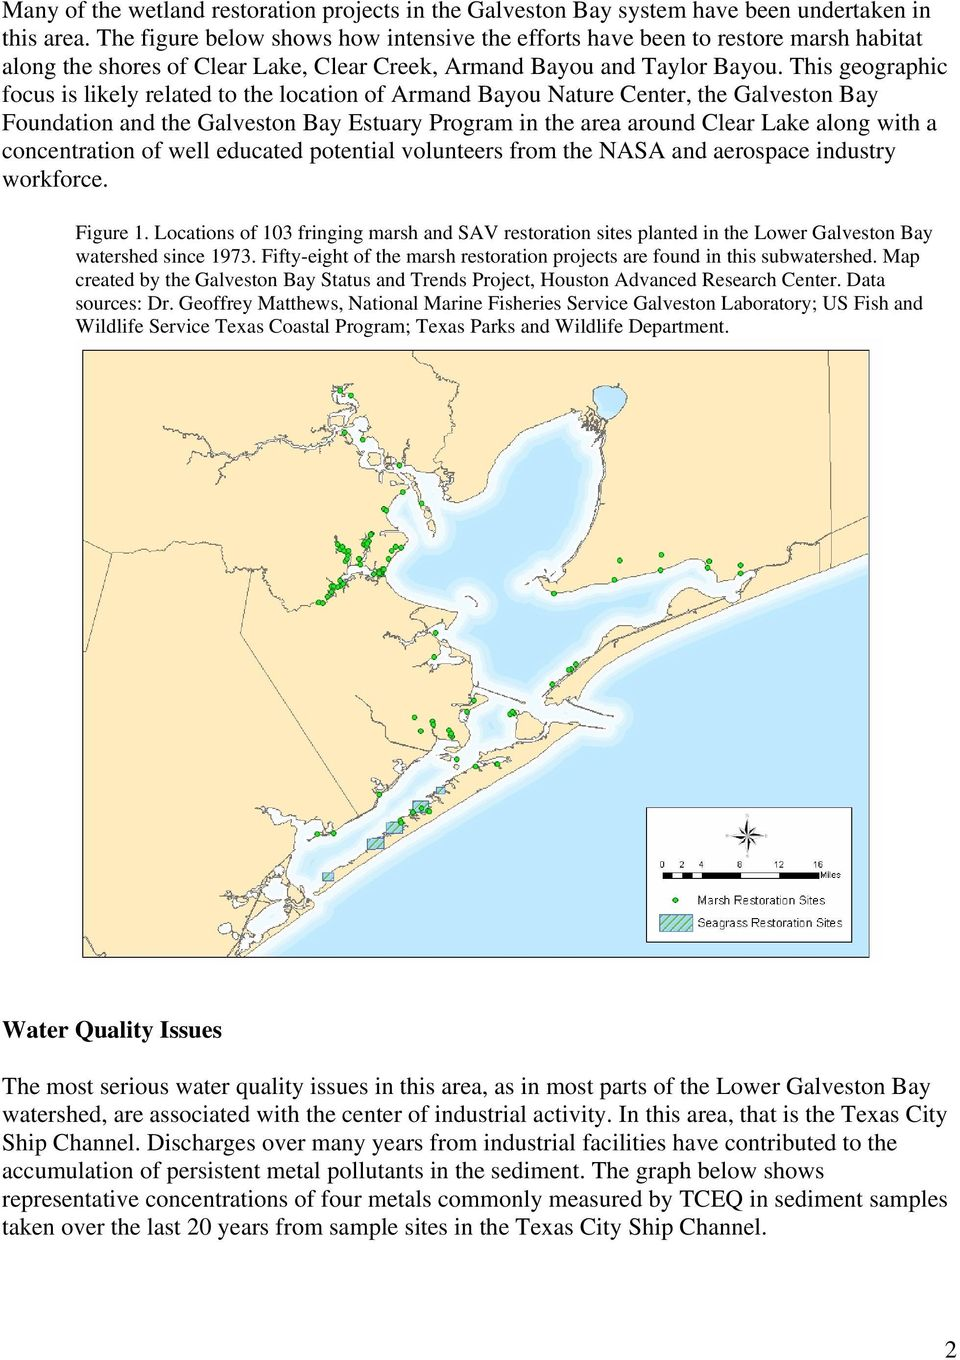 This geographic focus is likely related to the location of Armand Bayou Nature Center, the Galveston Bay Foundation and the Galveston Bay Estuary Program in the area around Clear Lake along with a